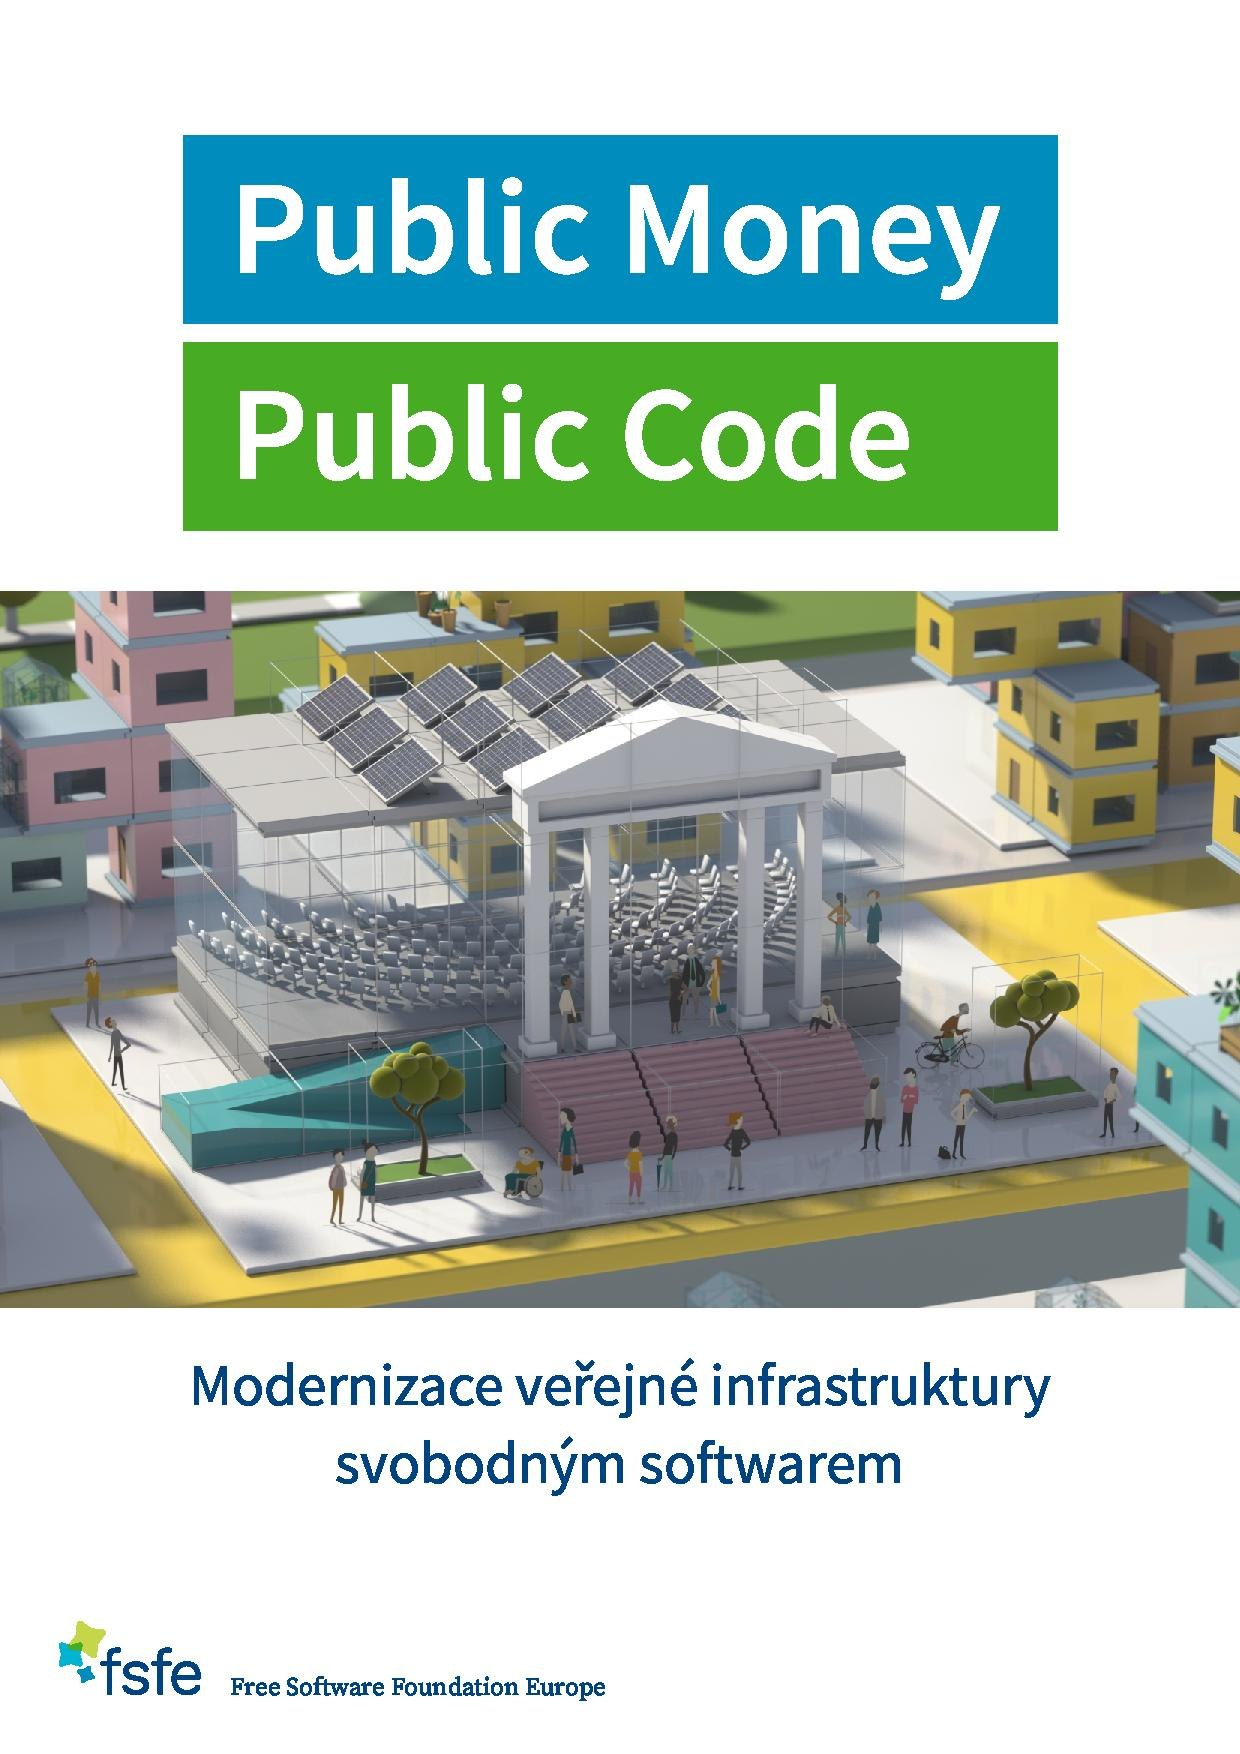 Public Money Public Code – Modernising Public Infrastructure with Free Software (Wikisource test).pdf